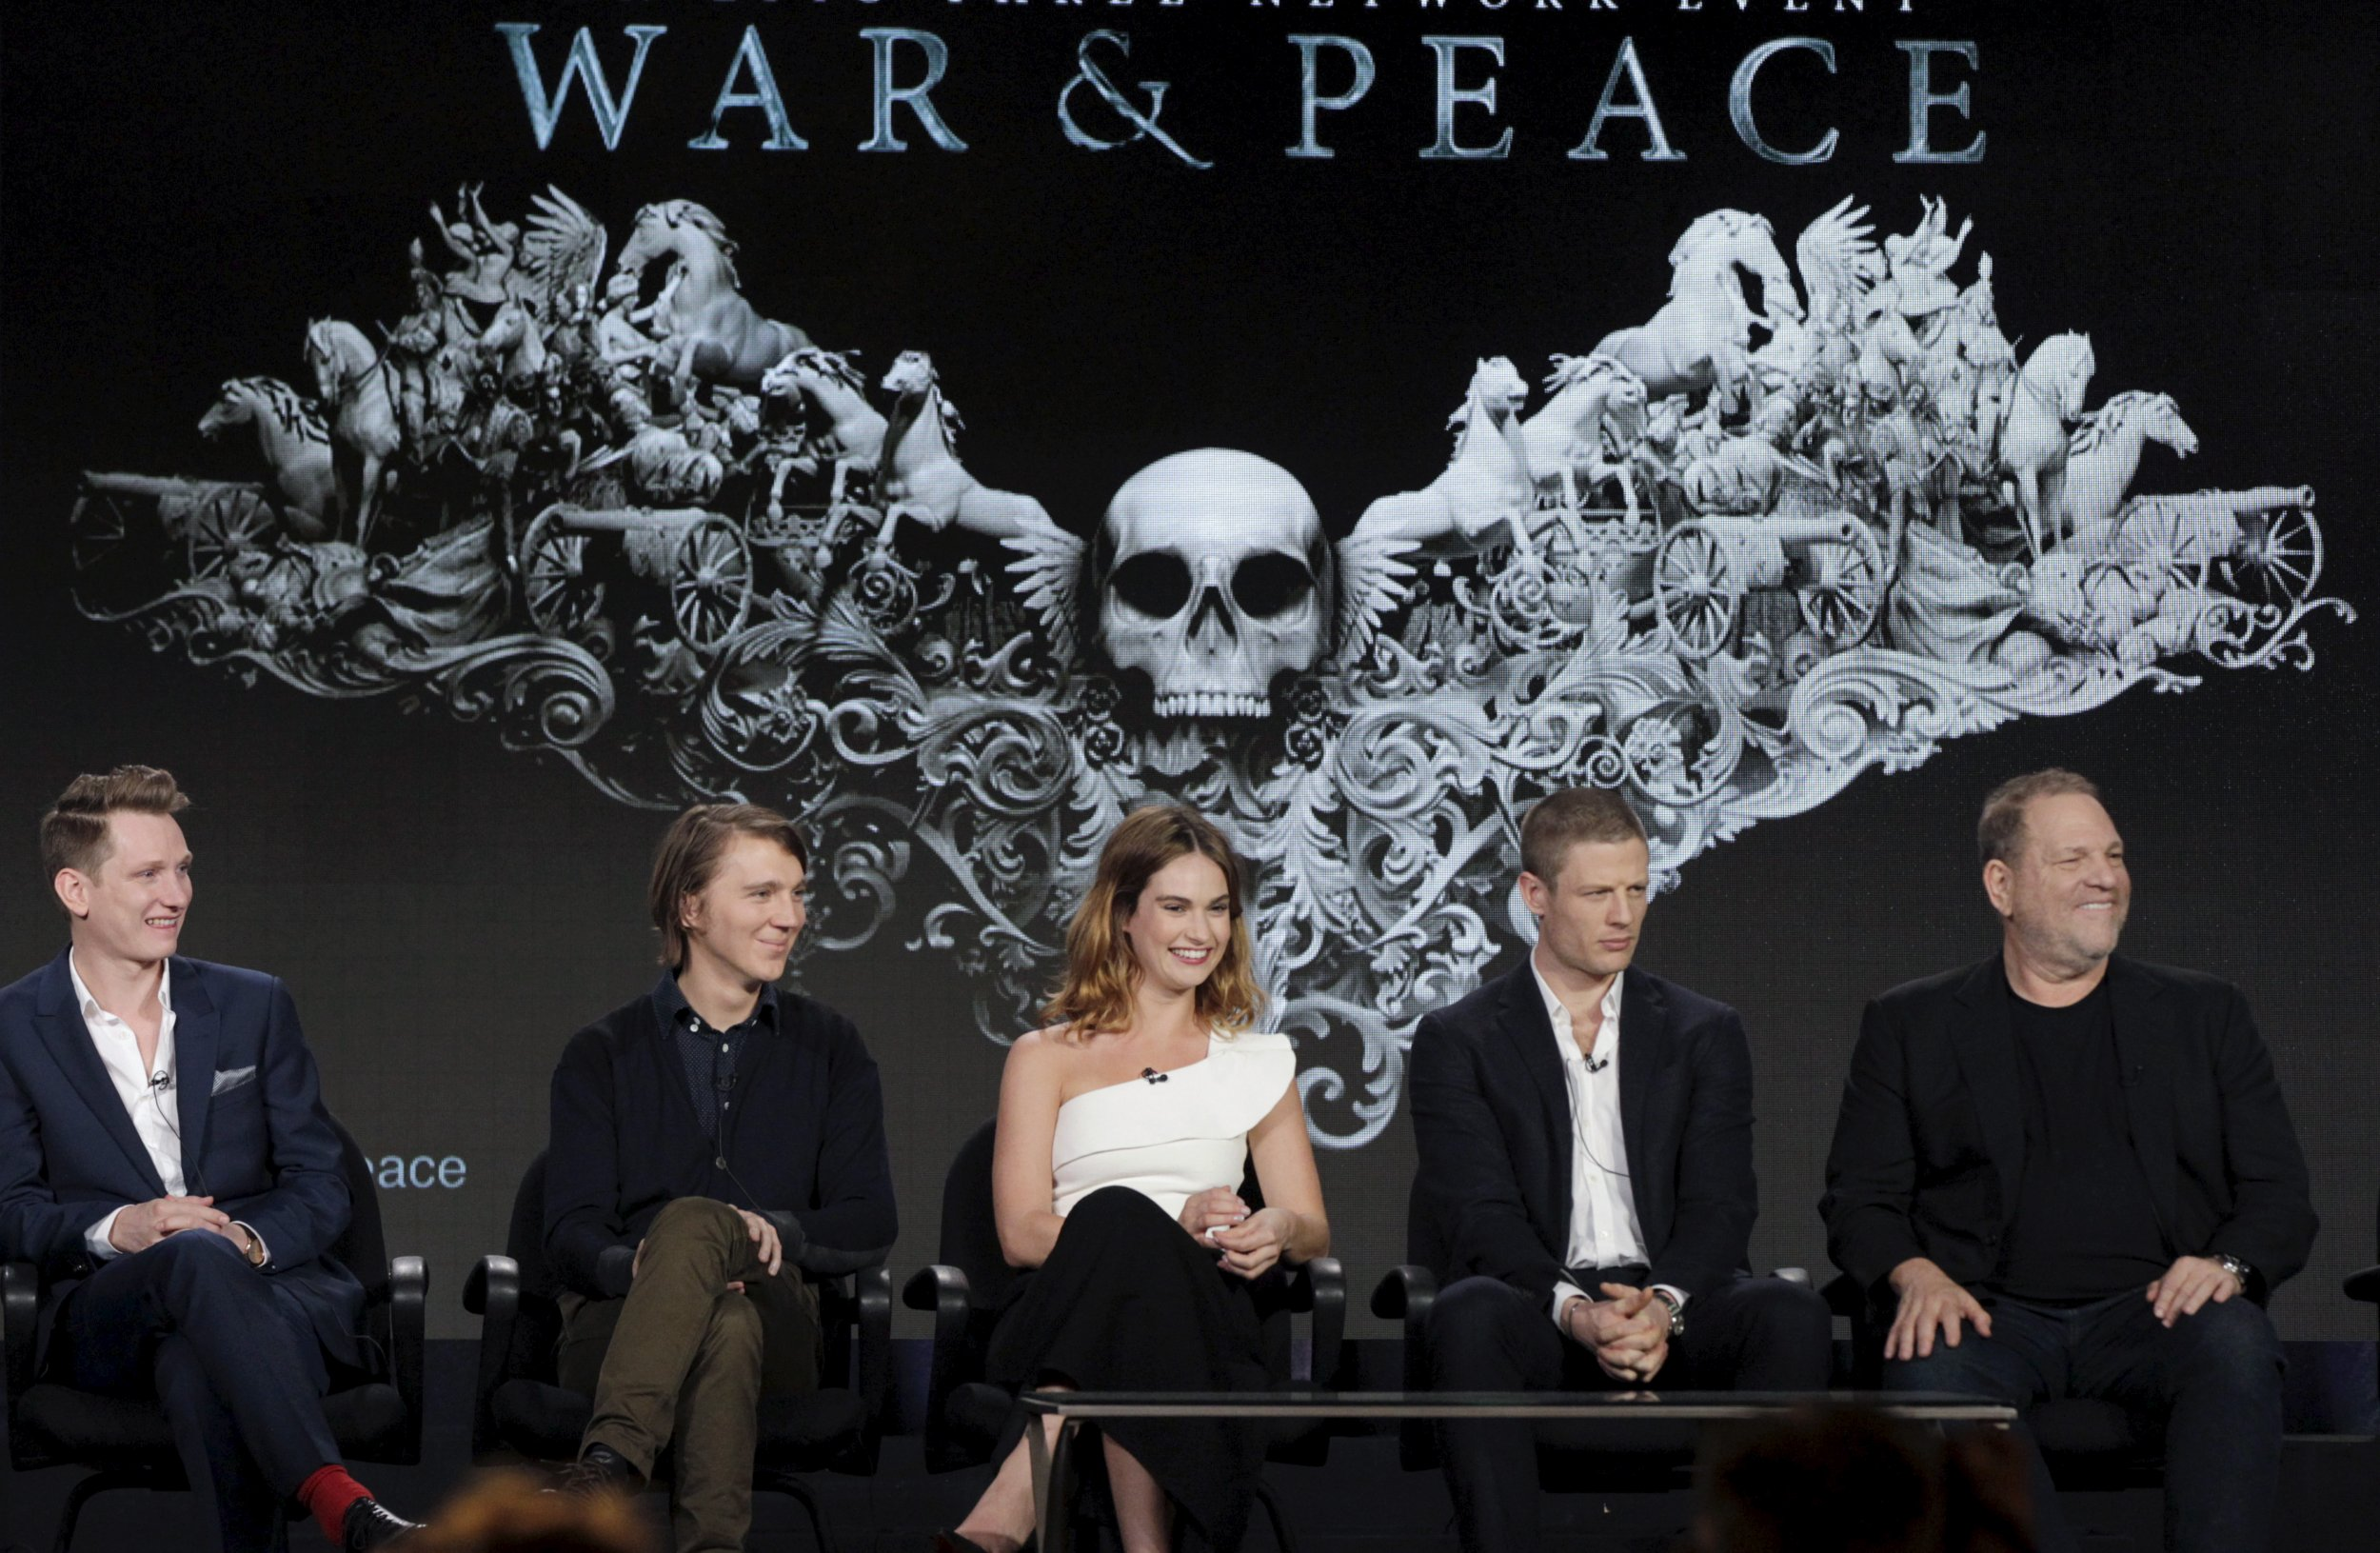 War and Peace cast sit in front of show title card